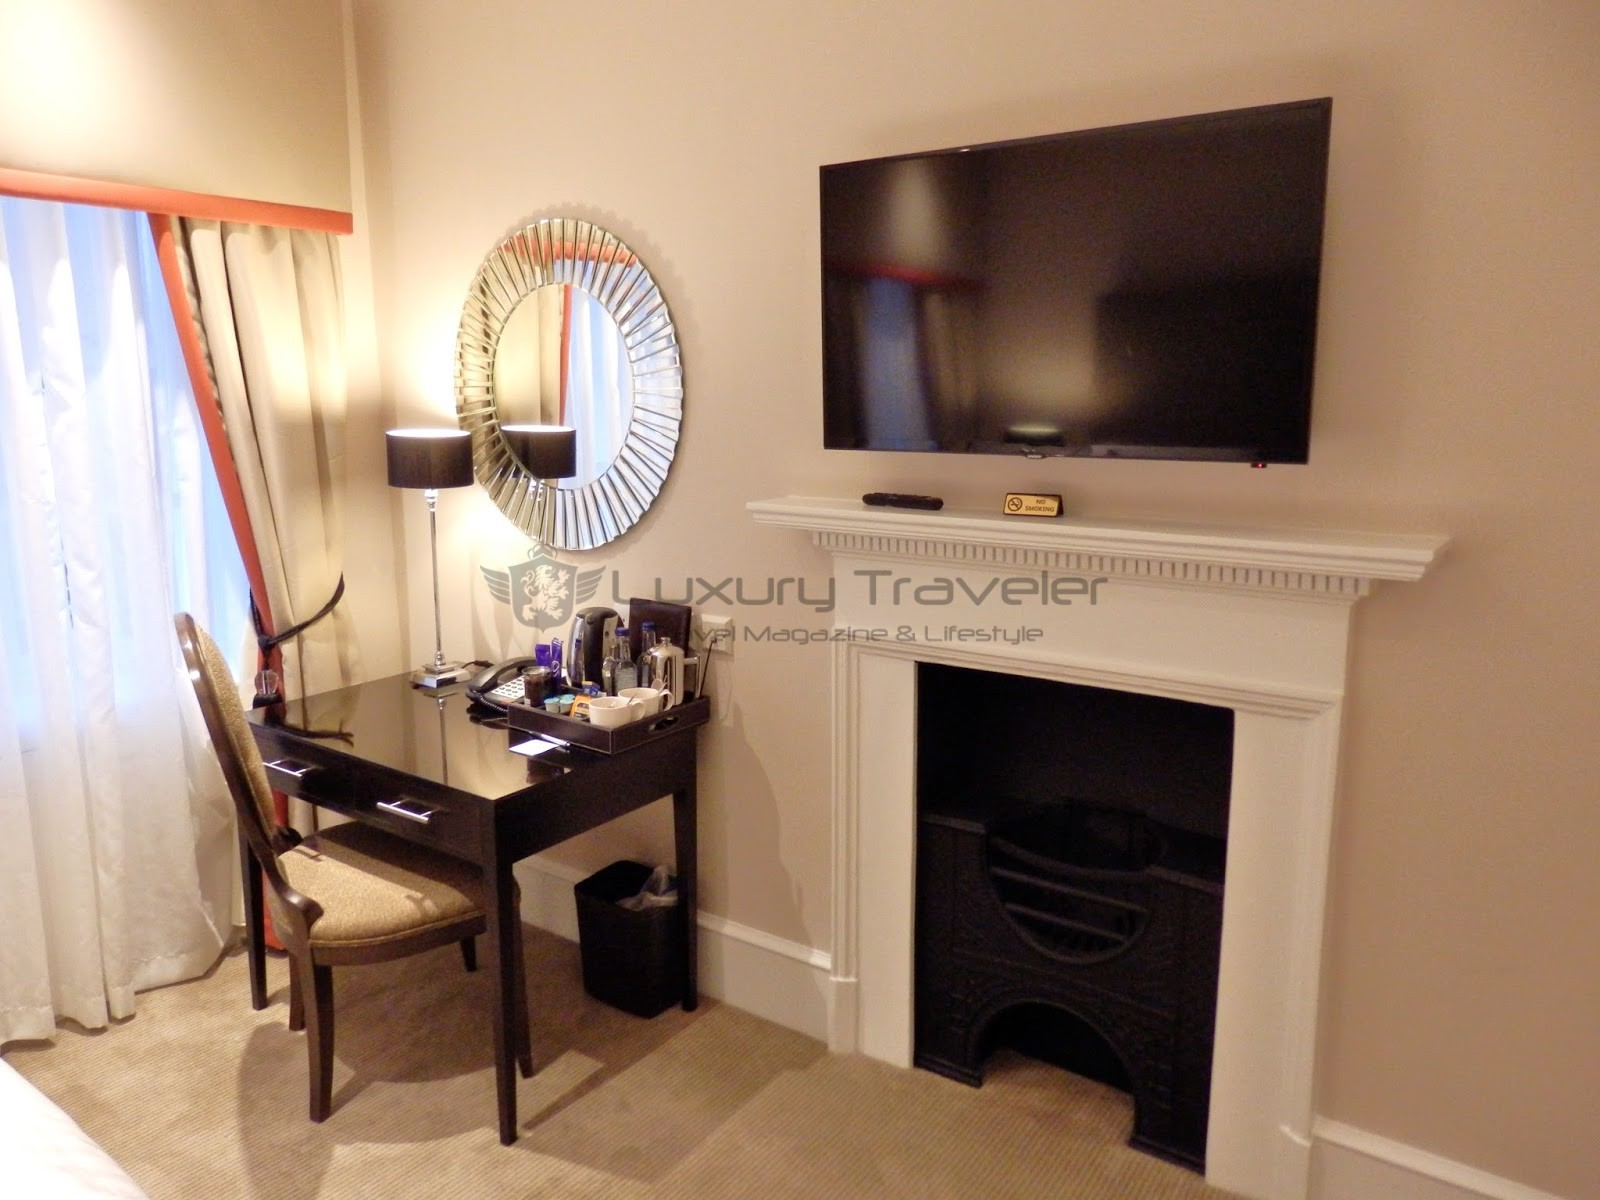 Montagu_Place_Hotel_London_Swanky_Fireplace